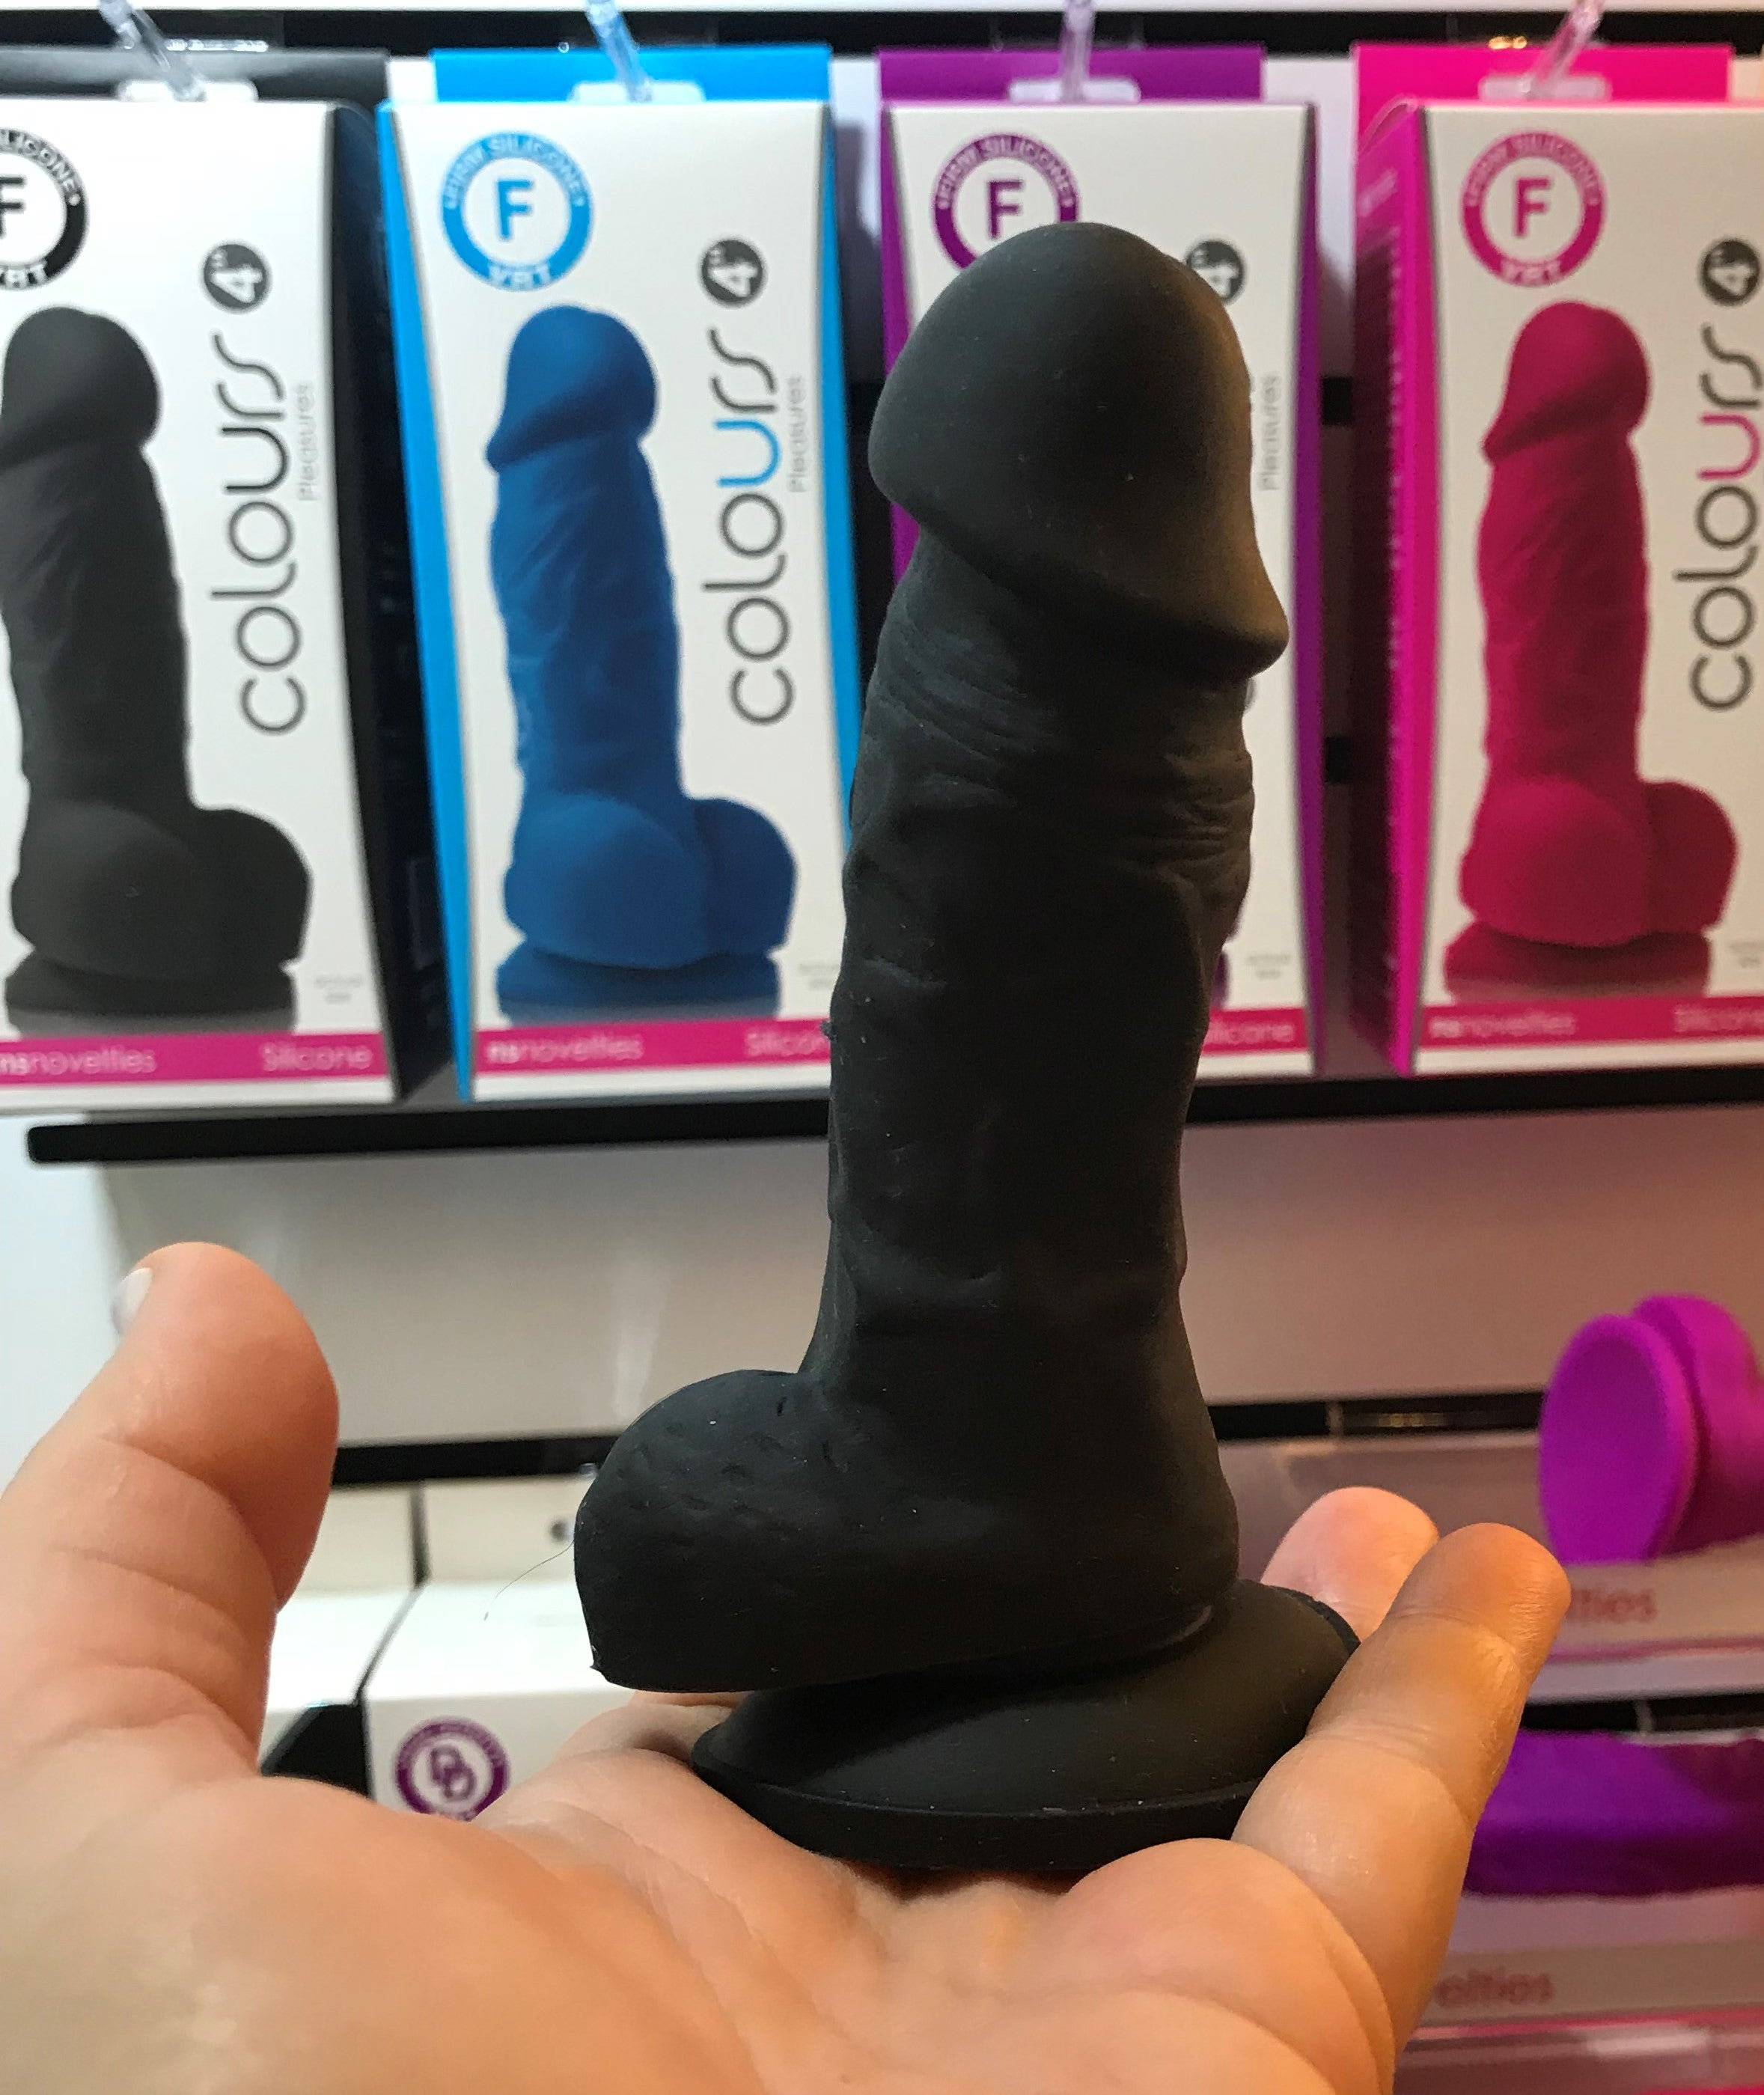 Colours Pleasures Realistic 4 Inch Silicone Dildo by NS Novelties - black in hand